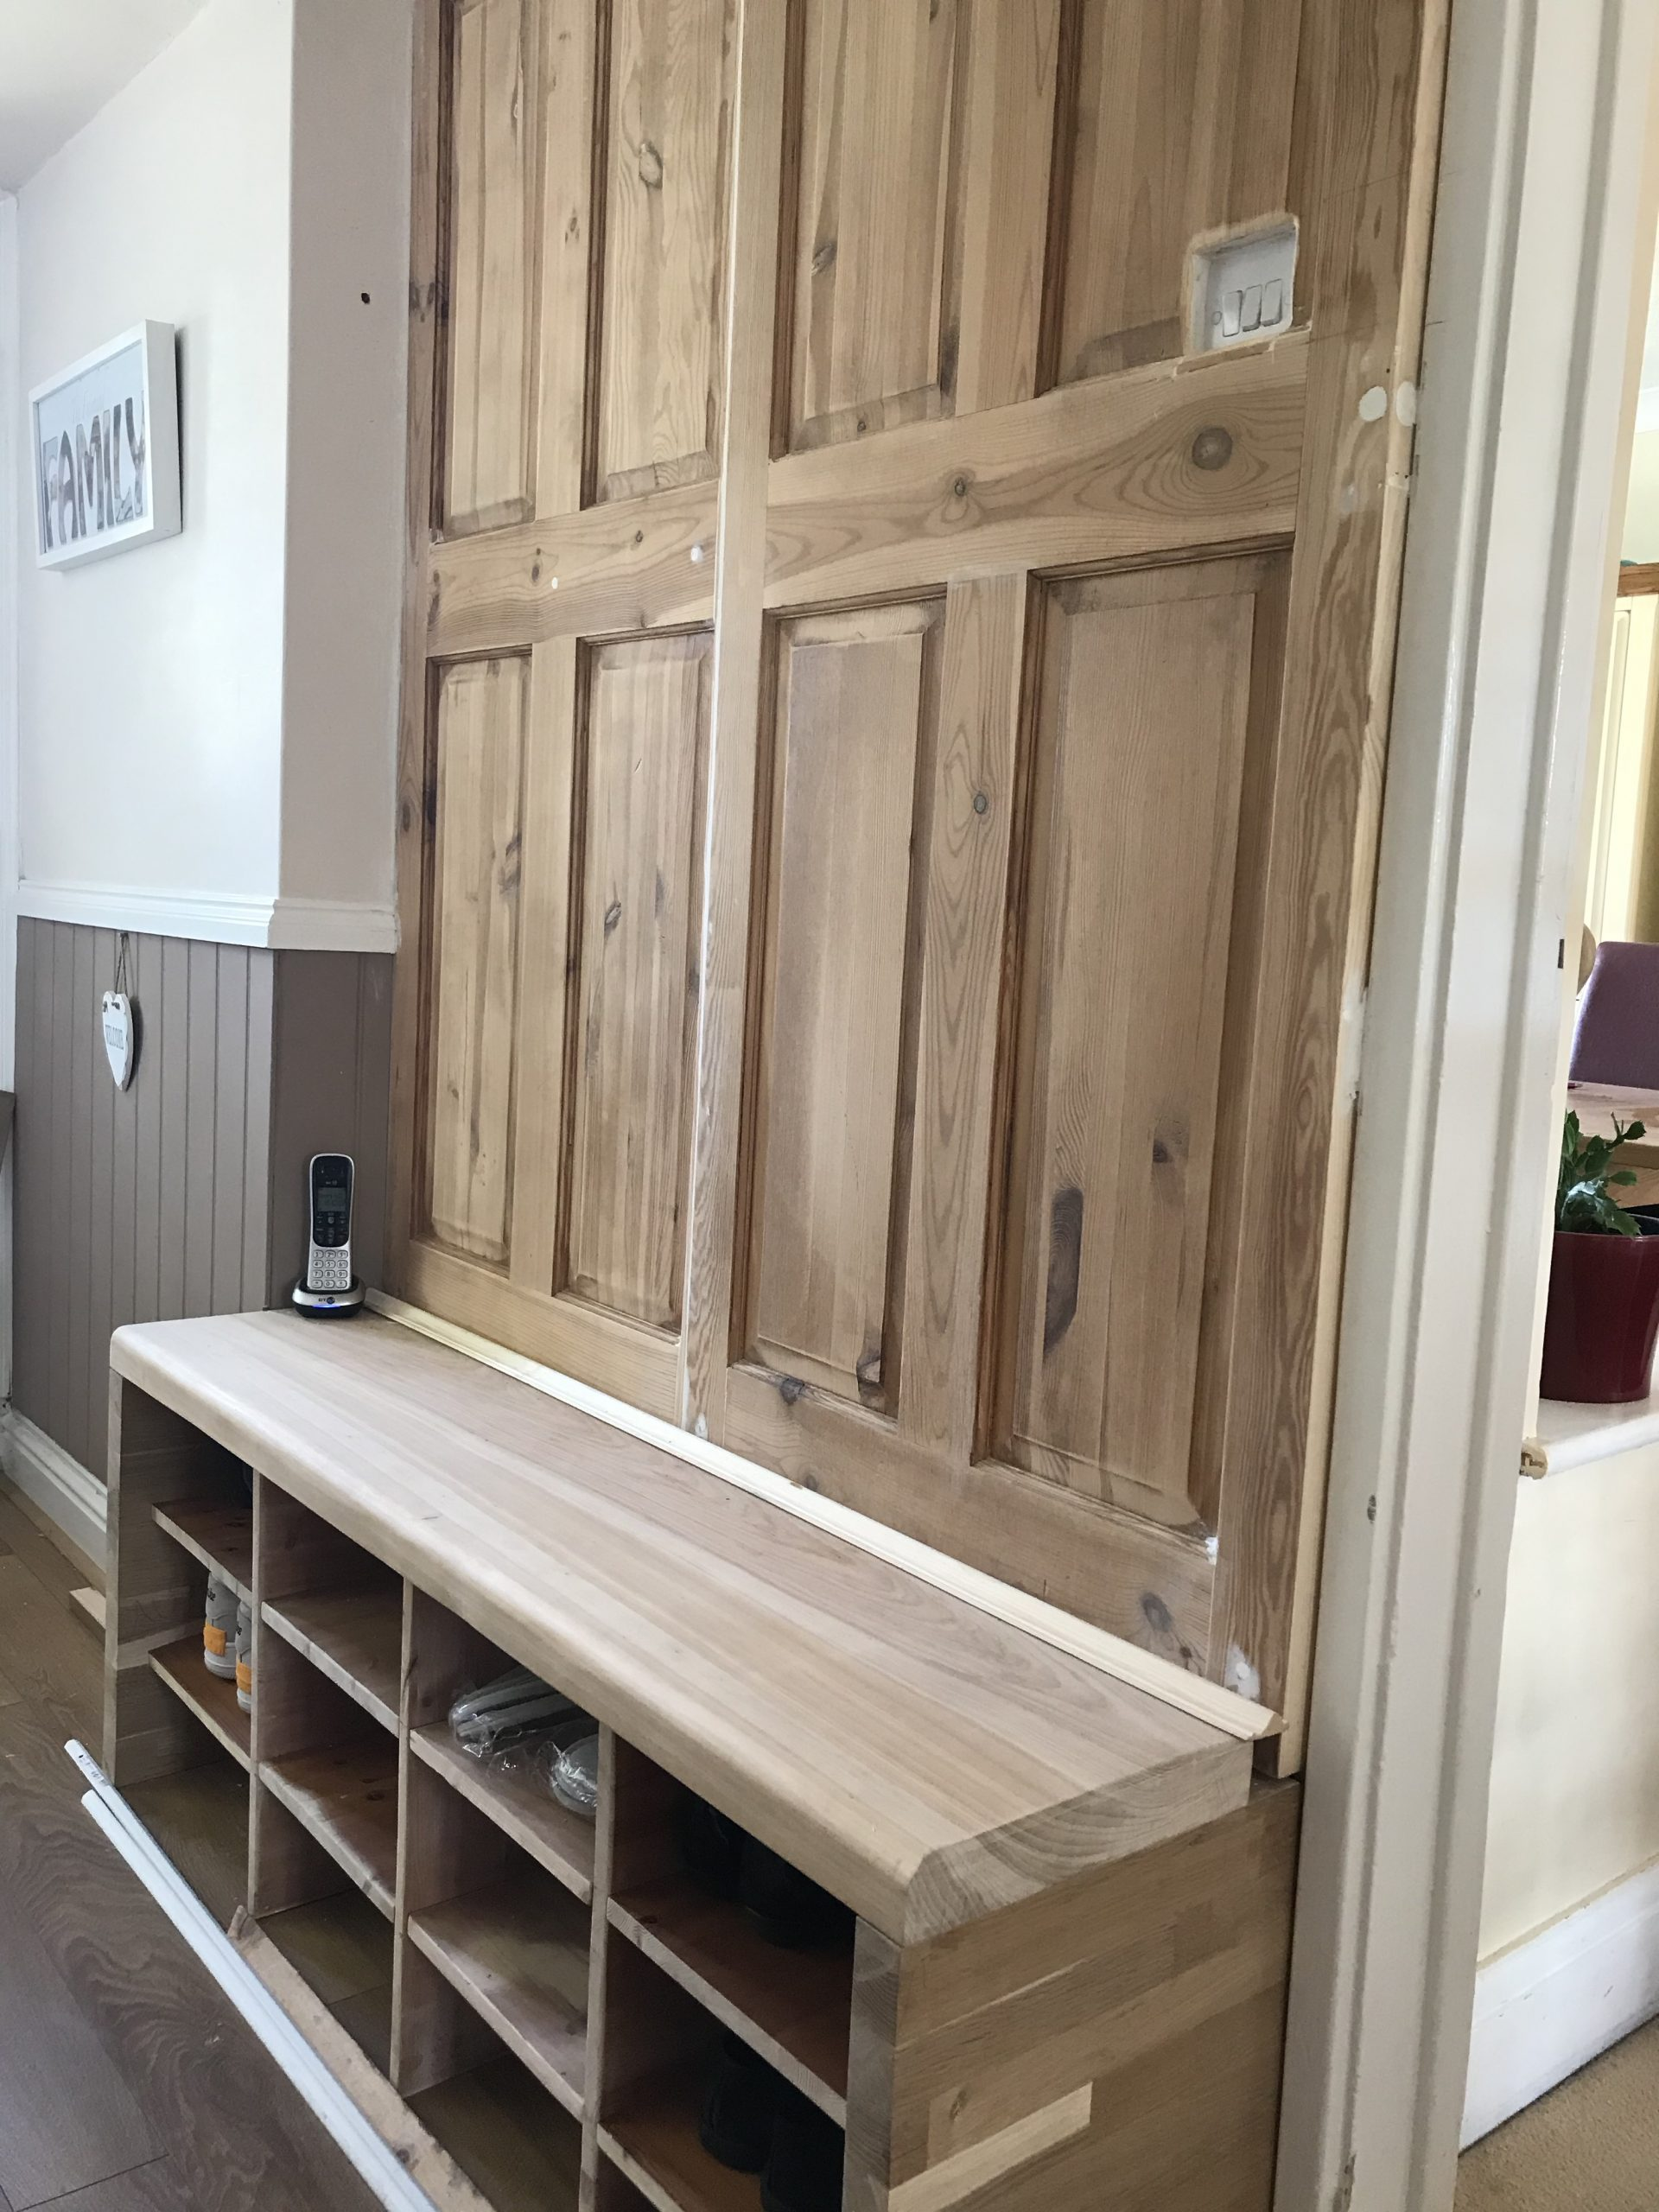 Upcycled old doors turned into hall seat bench